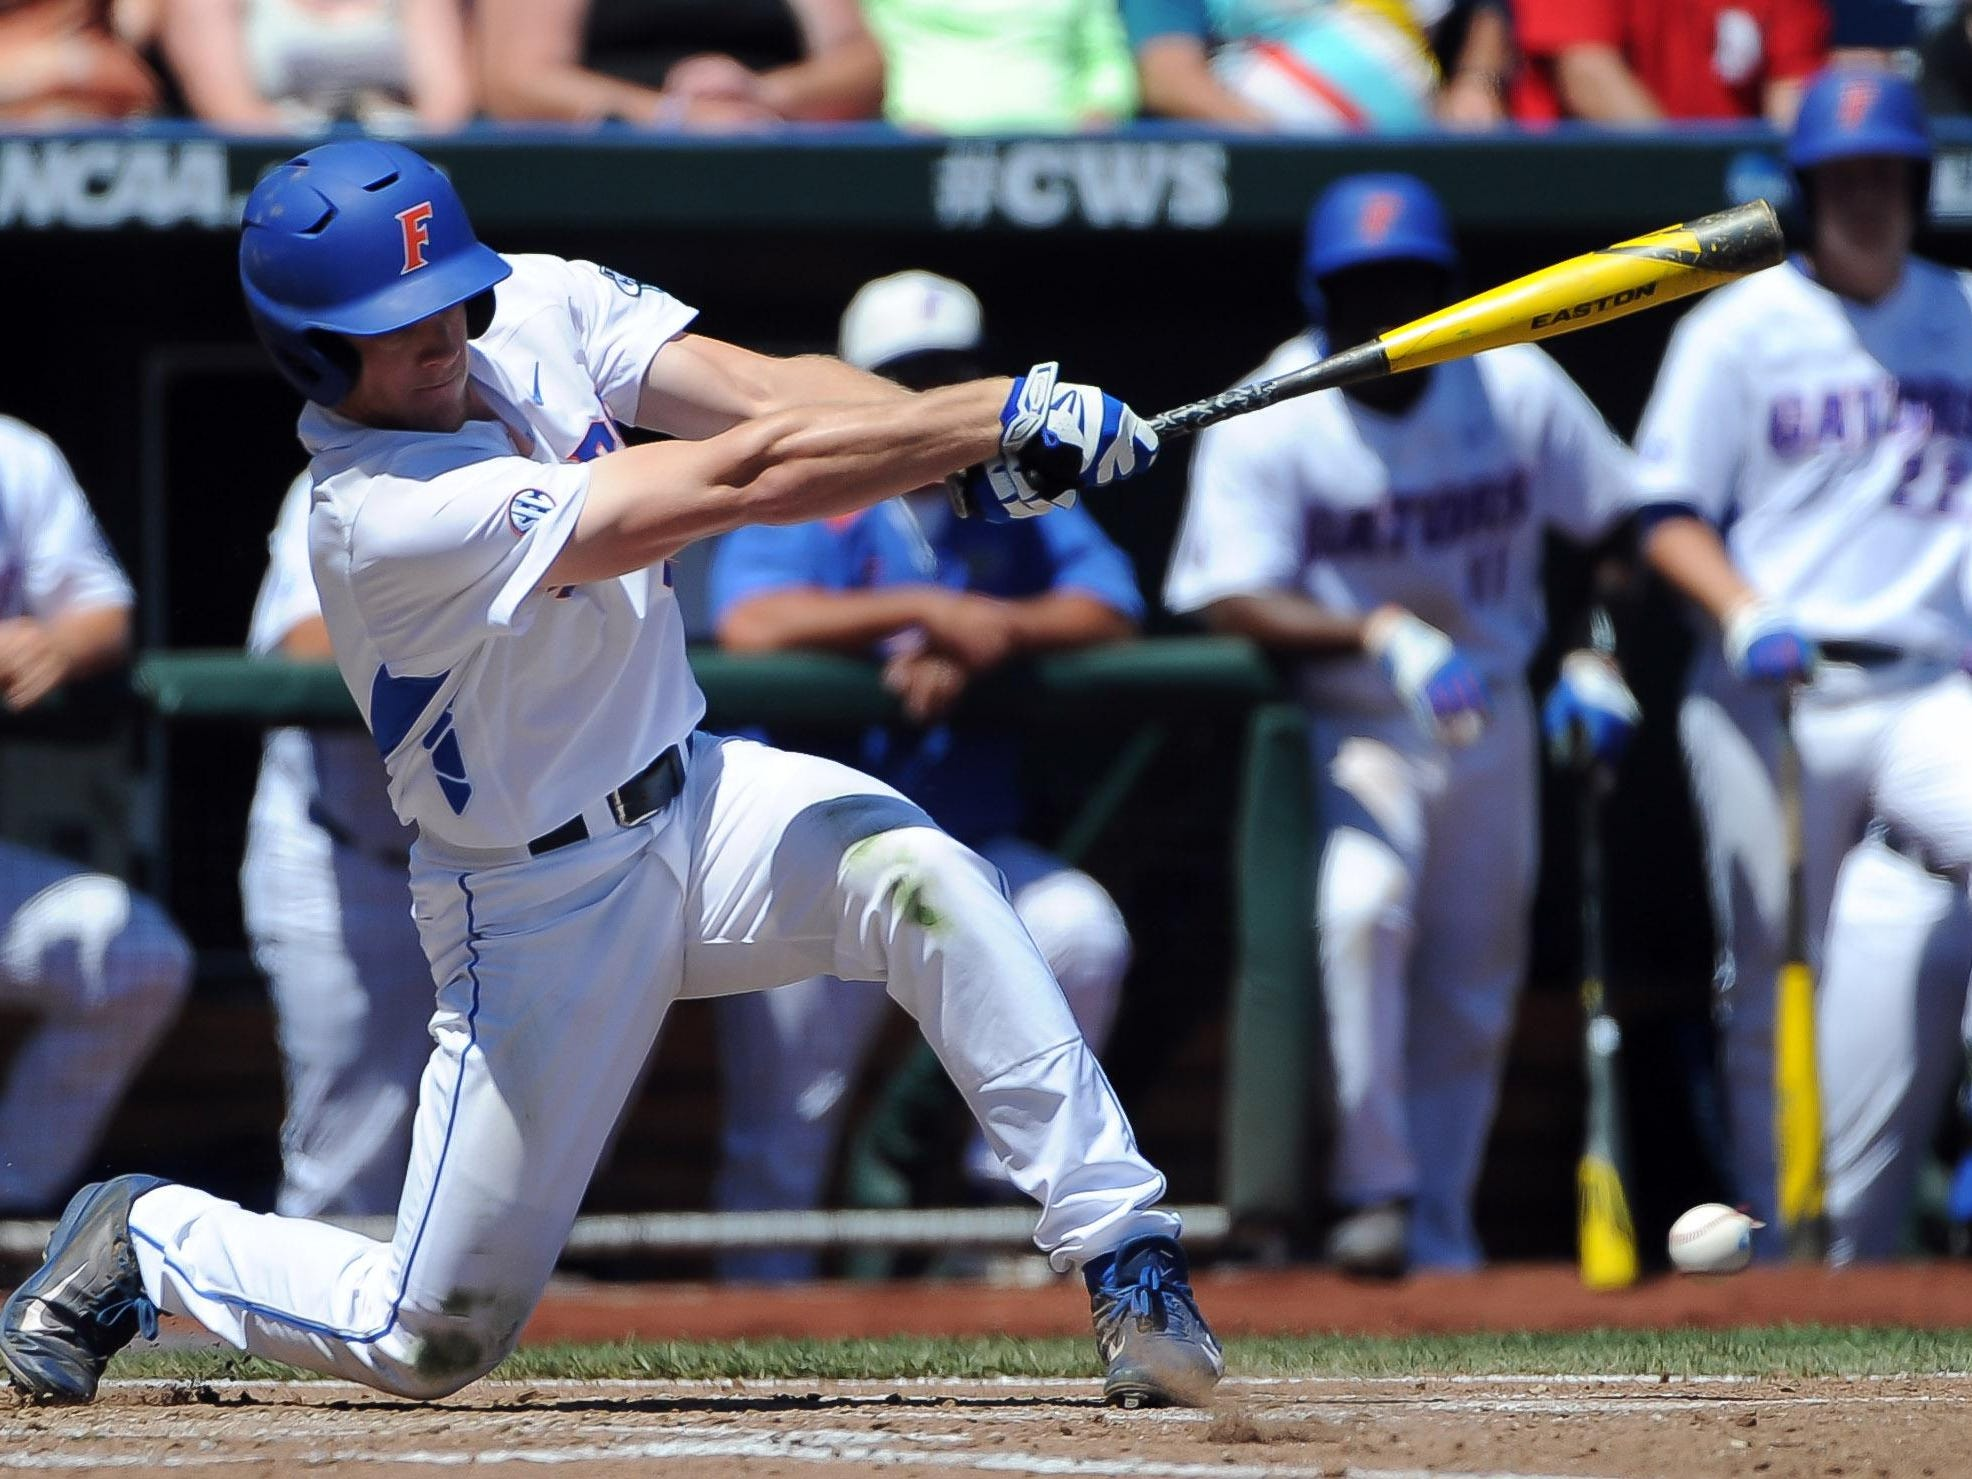 Florida Gators outfielder Harrison Bader (8) drives in the first run in the third inning against the Virginia Cavaliers in the 2015 College World Series at TD Ameritrade Park.